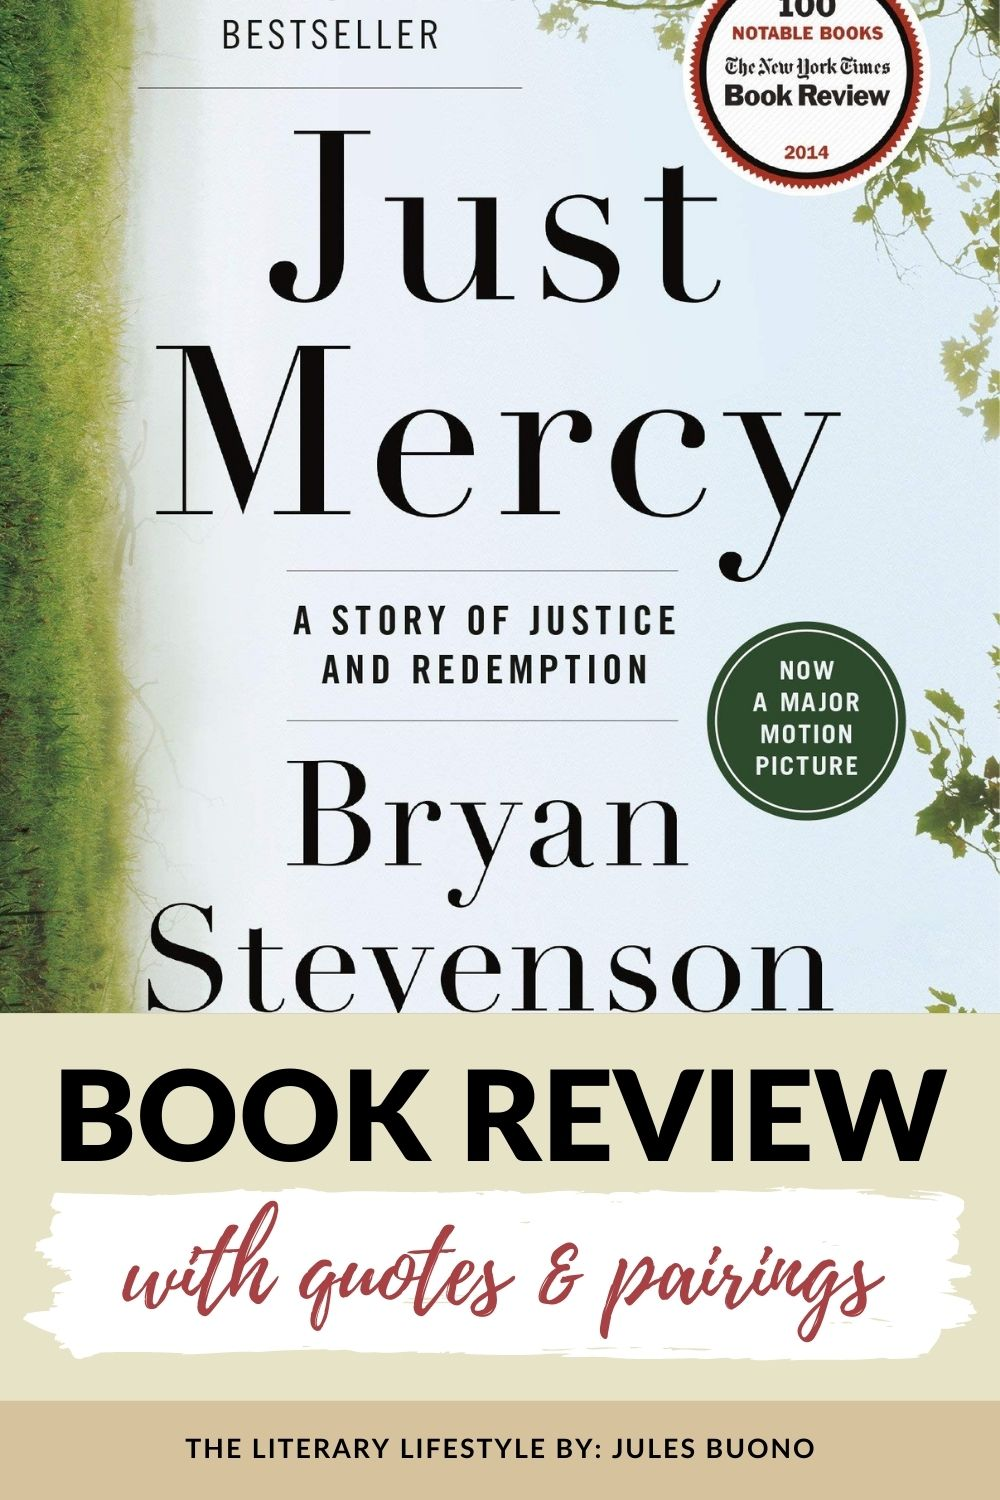 Book Review: Just Mercy